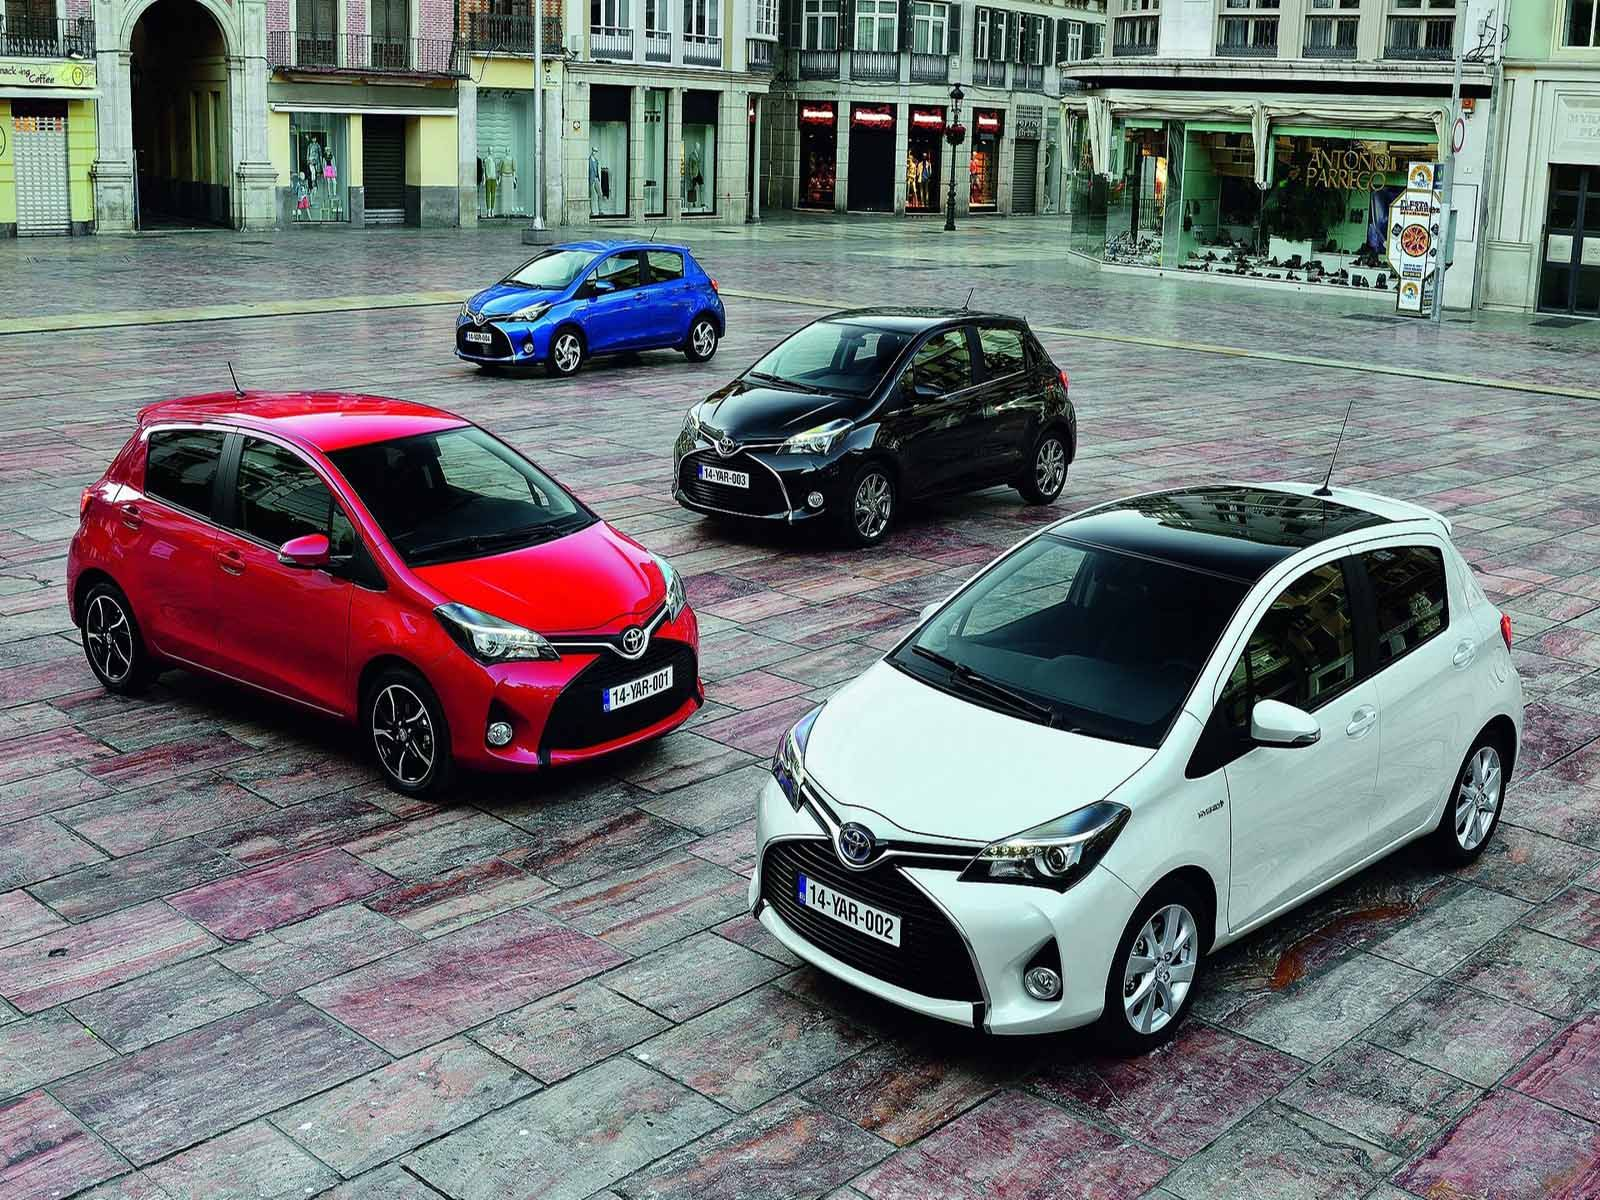 New Toyota Yaris 2015 Free Car Wallpaper Yaris Toyota Best Small Cars